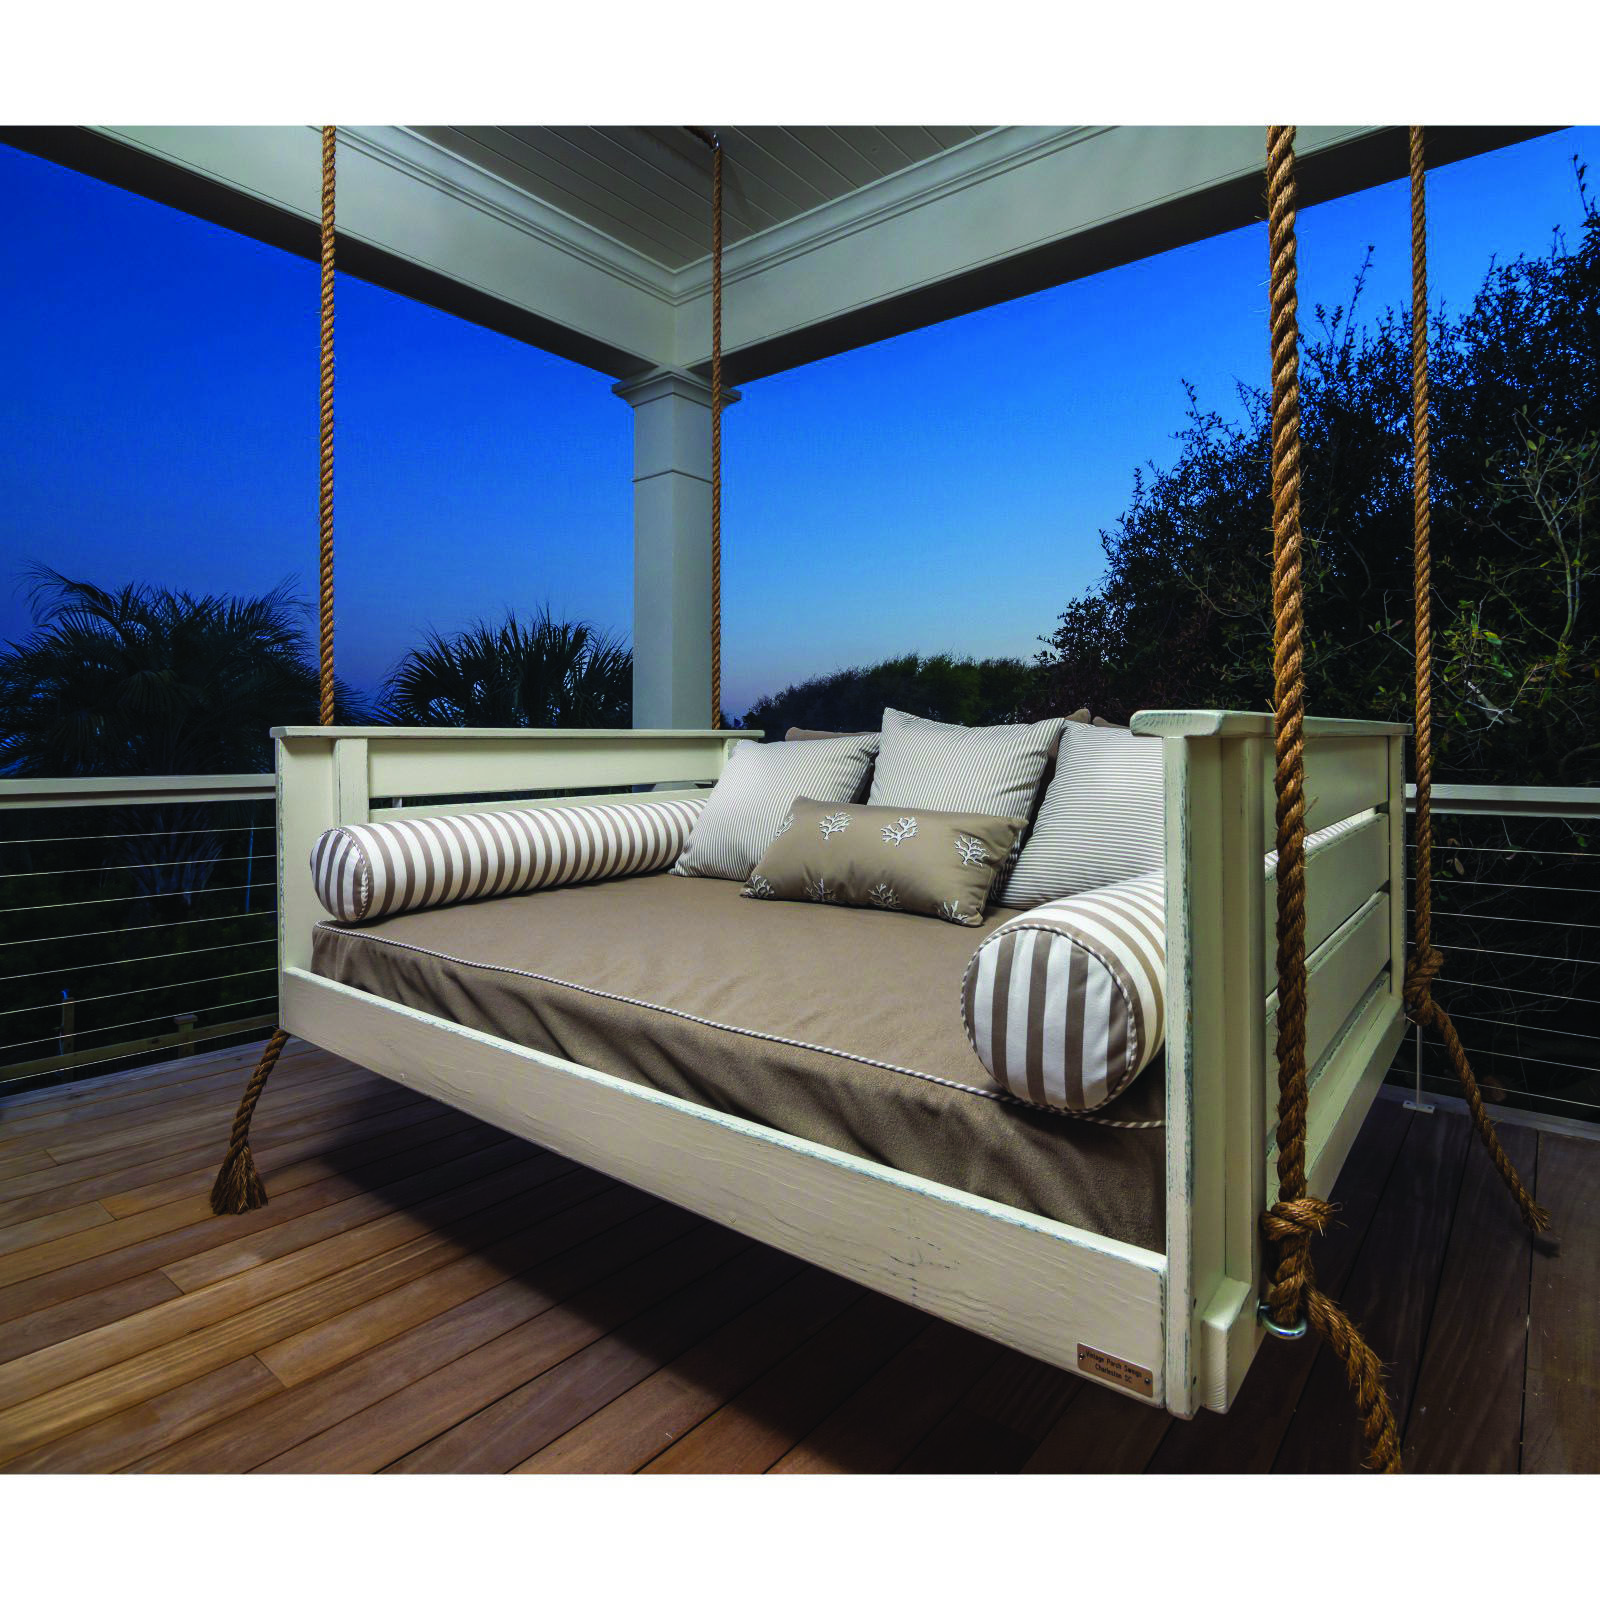 Free Do It Yourself Patio Swing Plans Suggestions To Chill In Your Face Balcony Homes Tre Porch Swing Bed Vintage Porch Swings Porch Swing